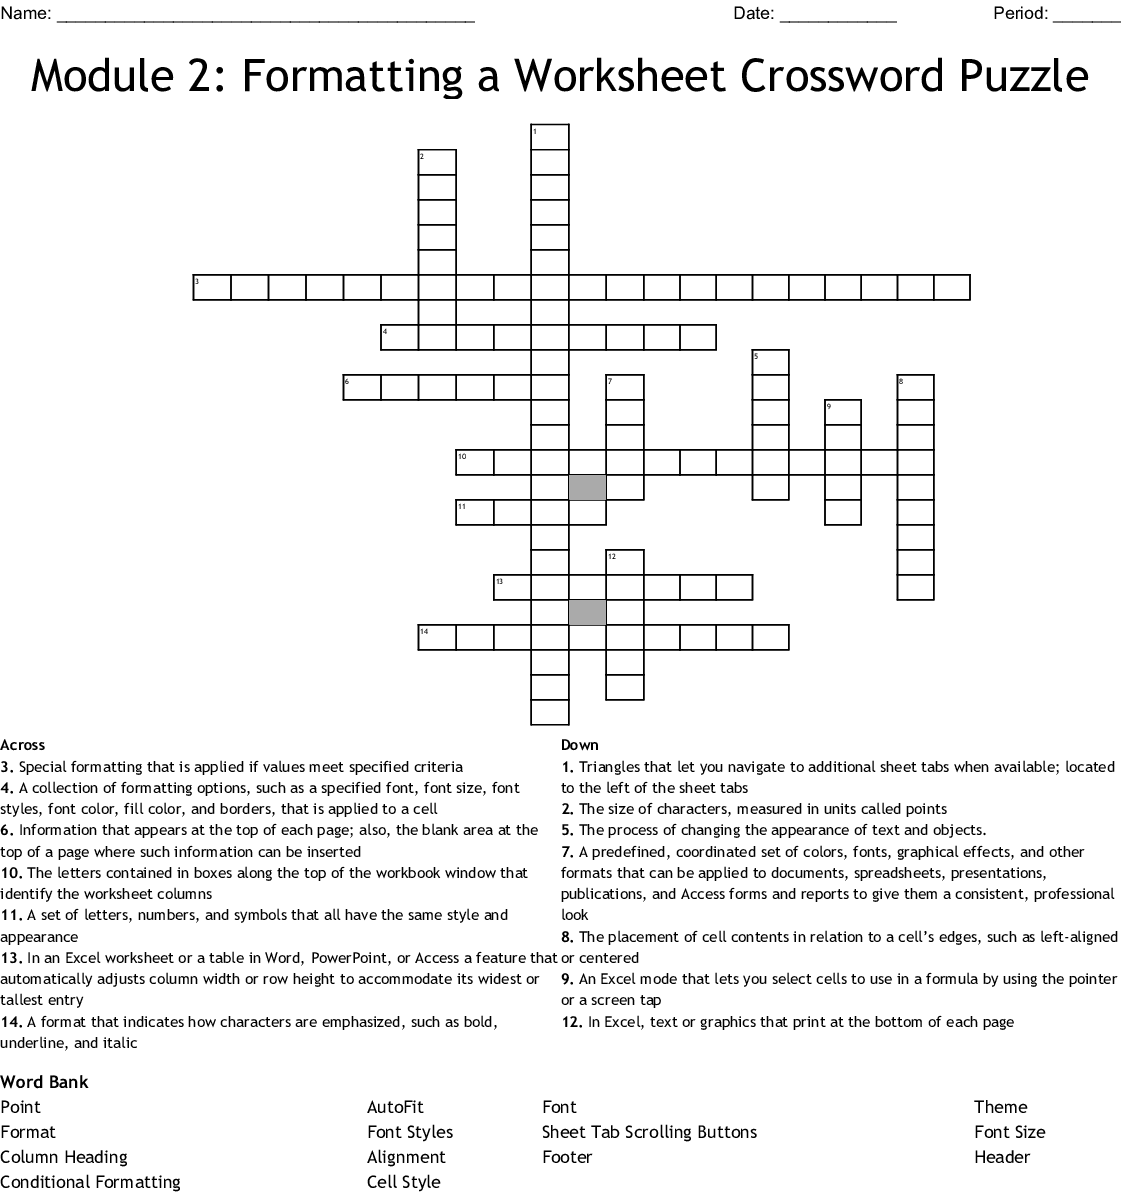 Module 2 Formatting A Worksheet Crossword Puzzle